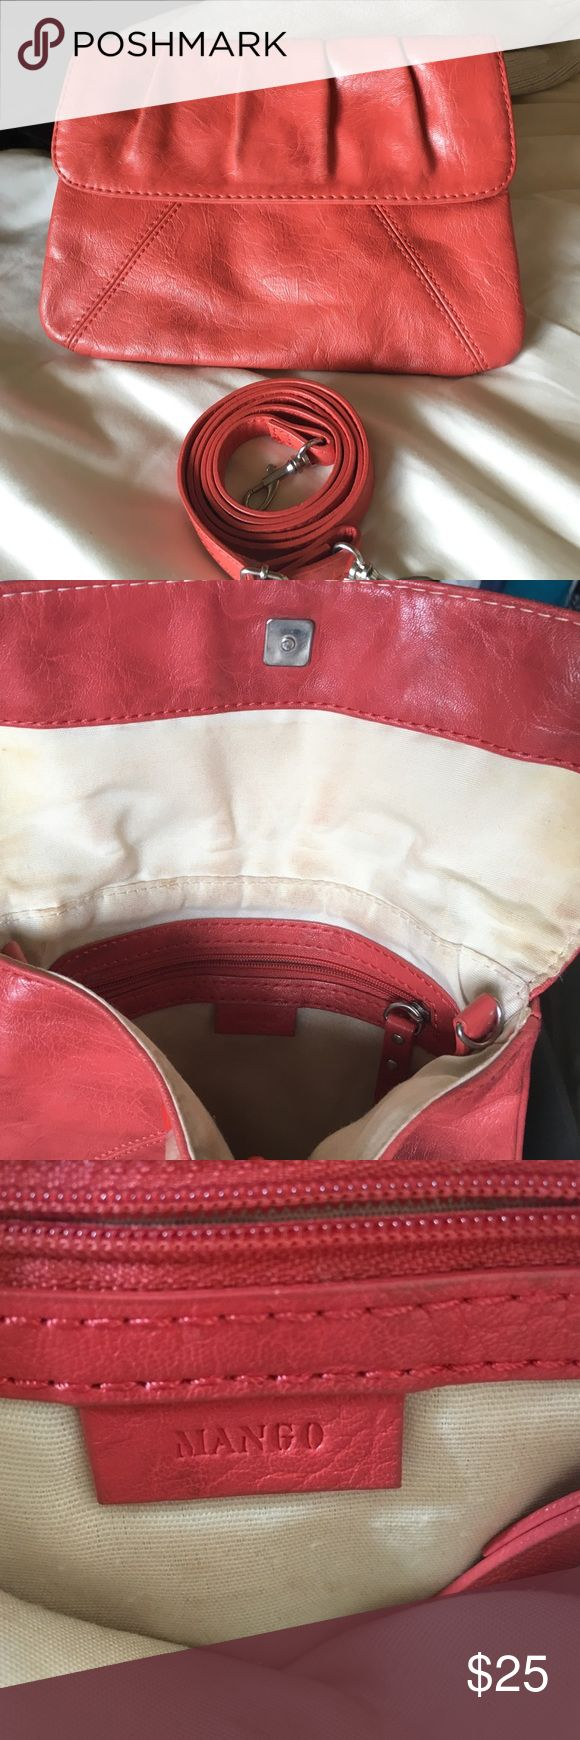 Clutch Adorable summer coral-colored clutch. Some discoloration on the inside but in great condition otherwise. Comes with detachable strap for option to make it a crossbody bag. Last picture shows the size. Mango Bags Clutches & Wristlets